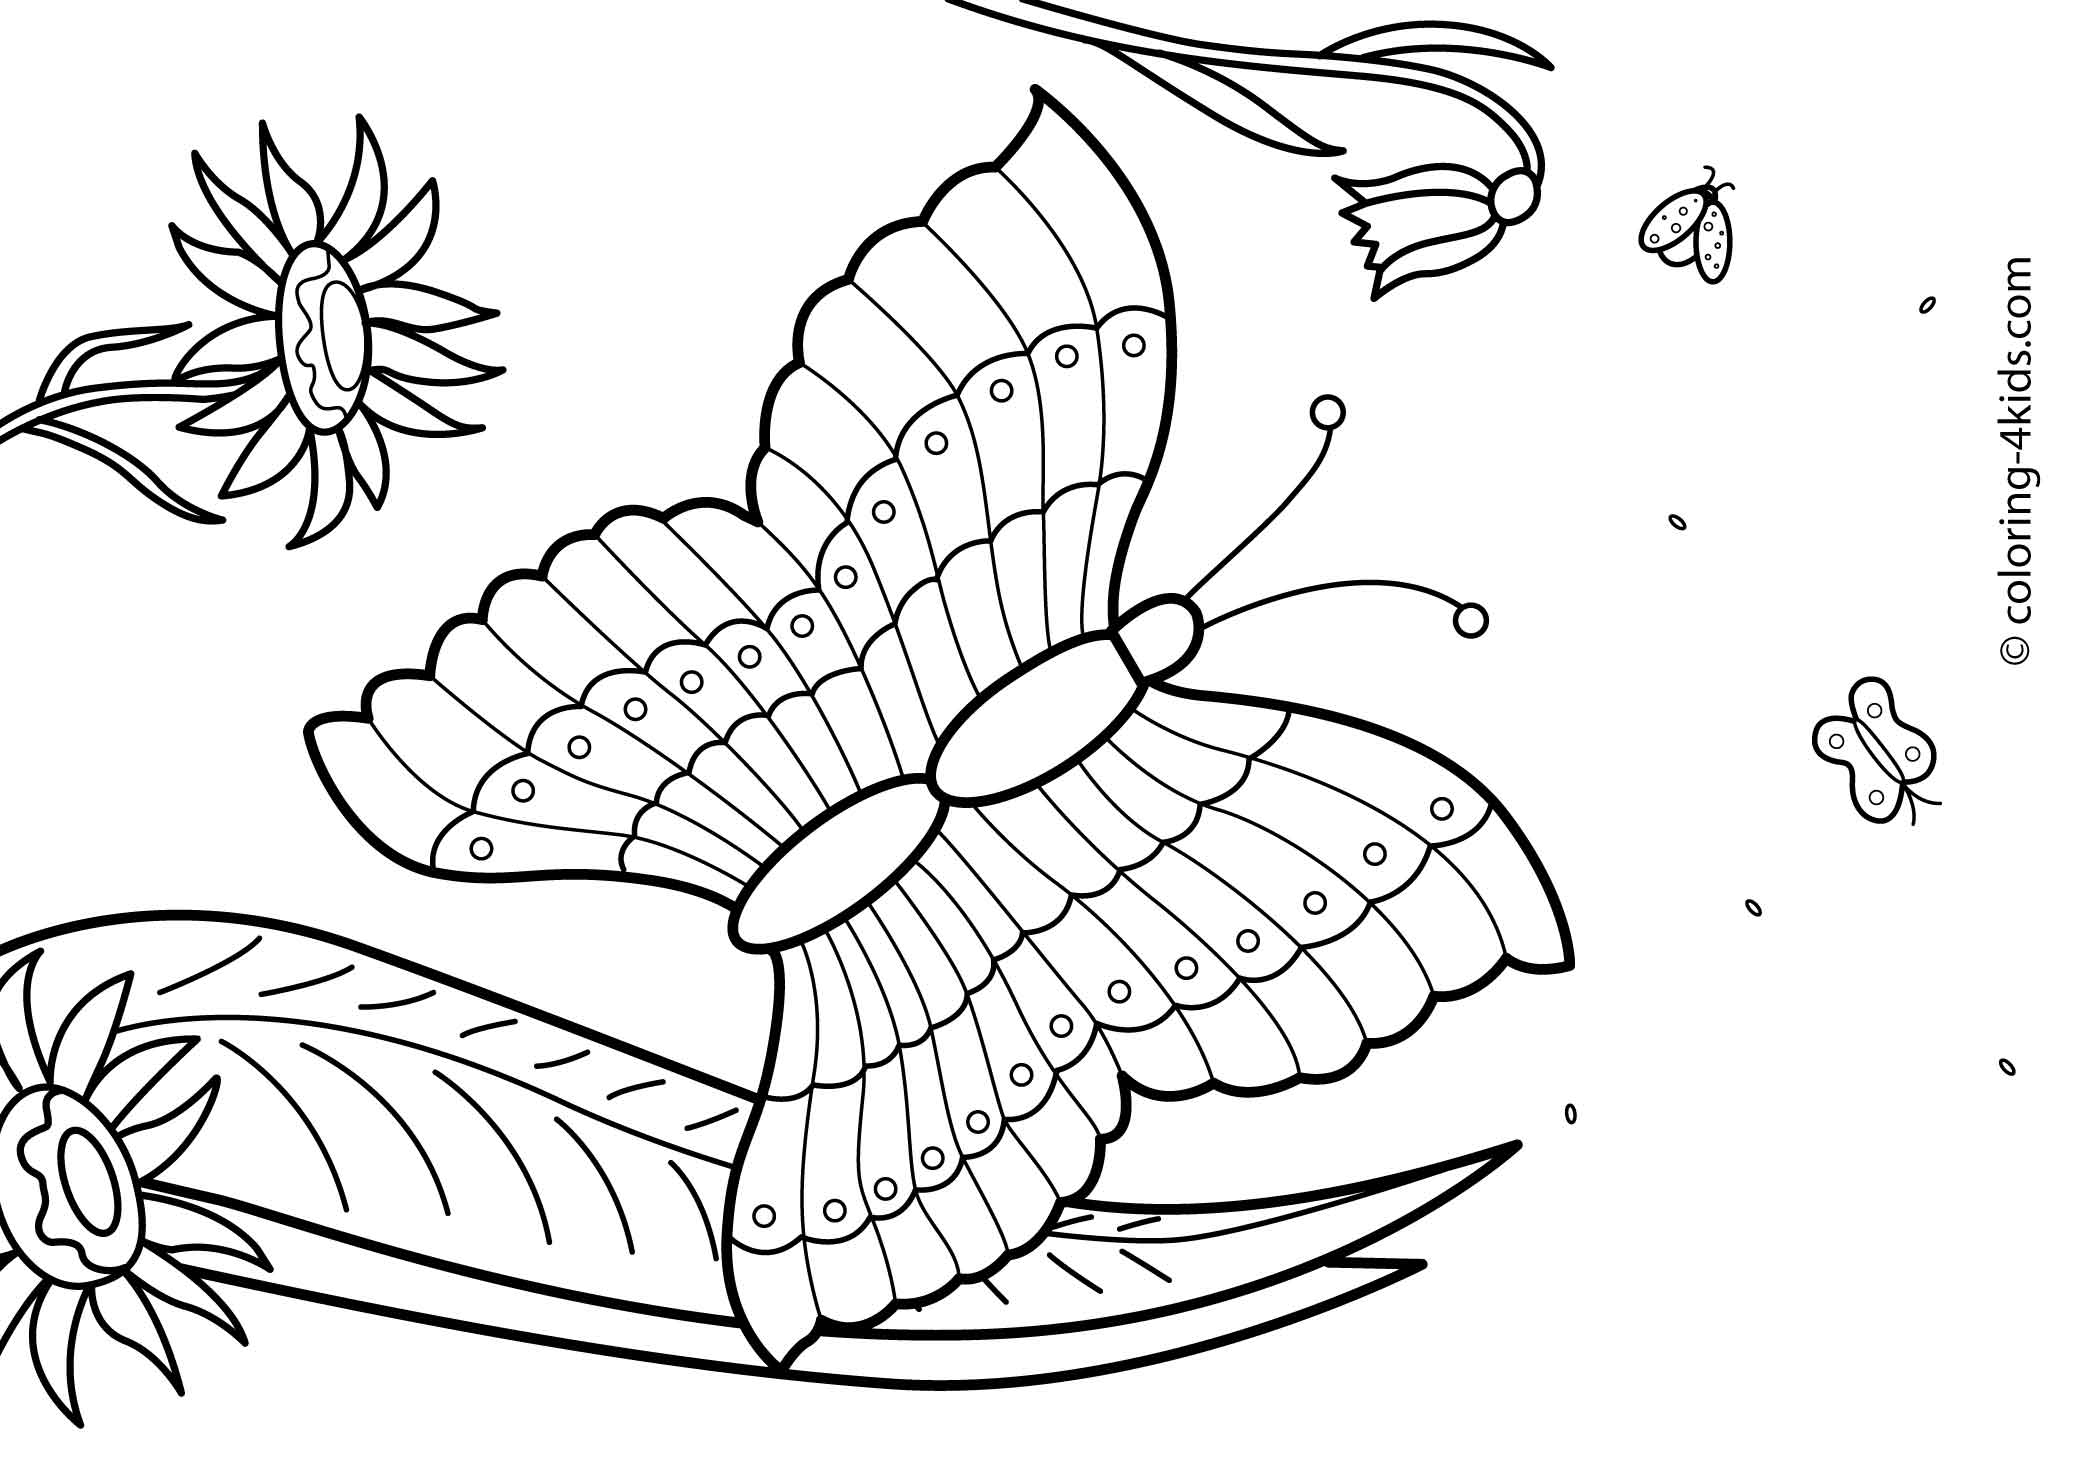 summer color sheets summer coloring pages to download and print for free color sheets summer